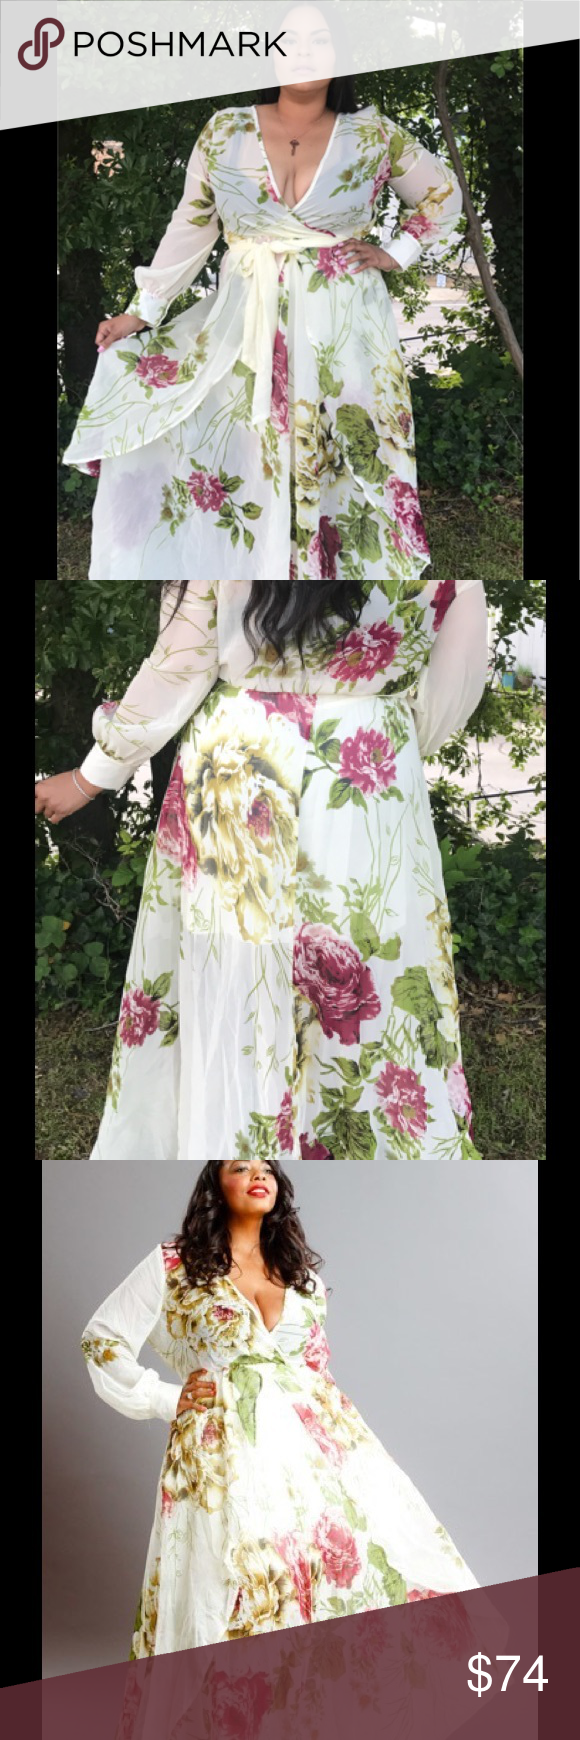 xtran gorgeous sheer floral maxi dress boutique floral maxi